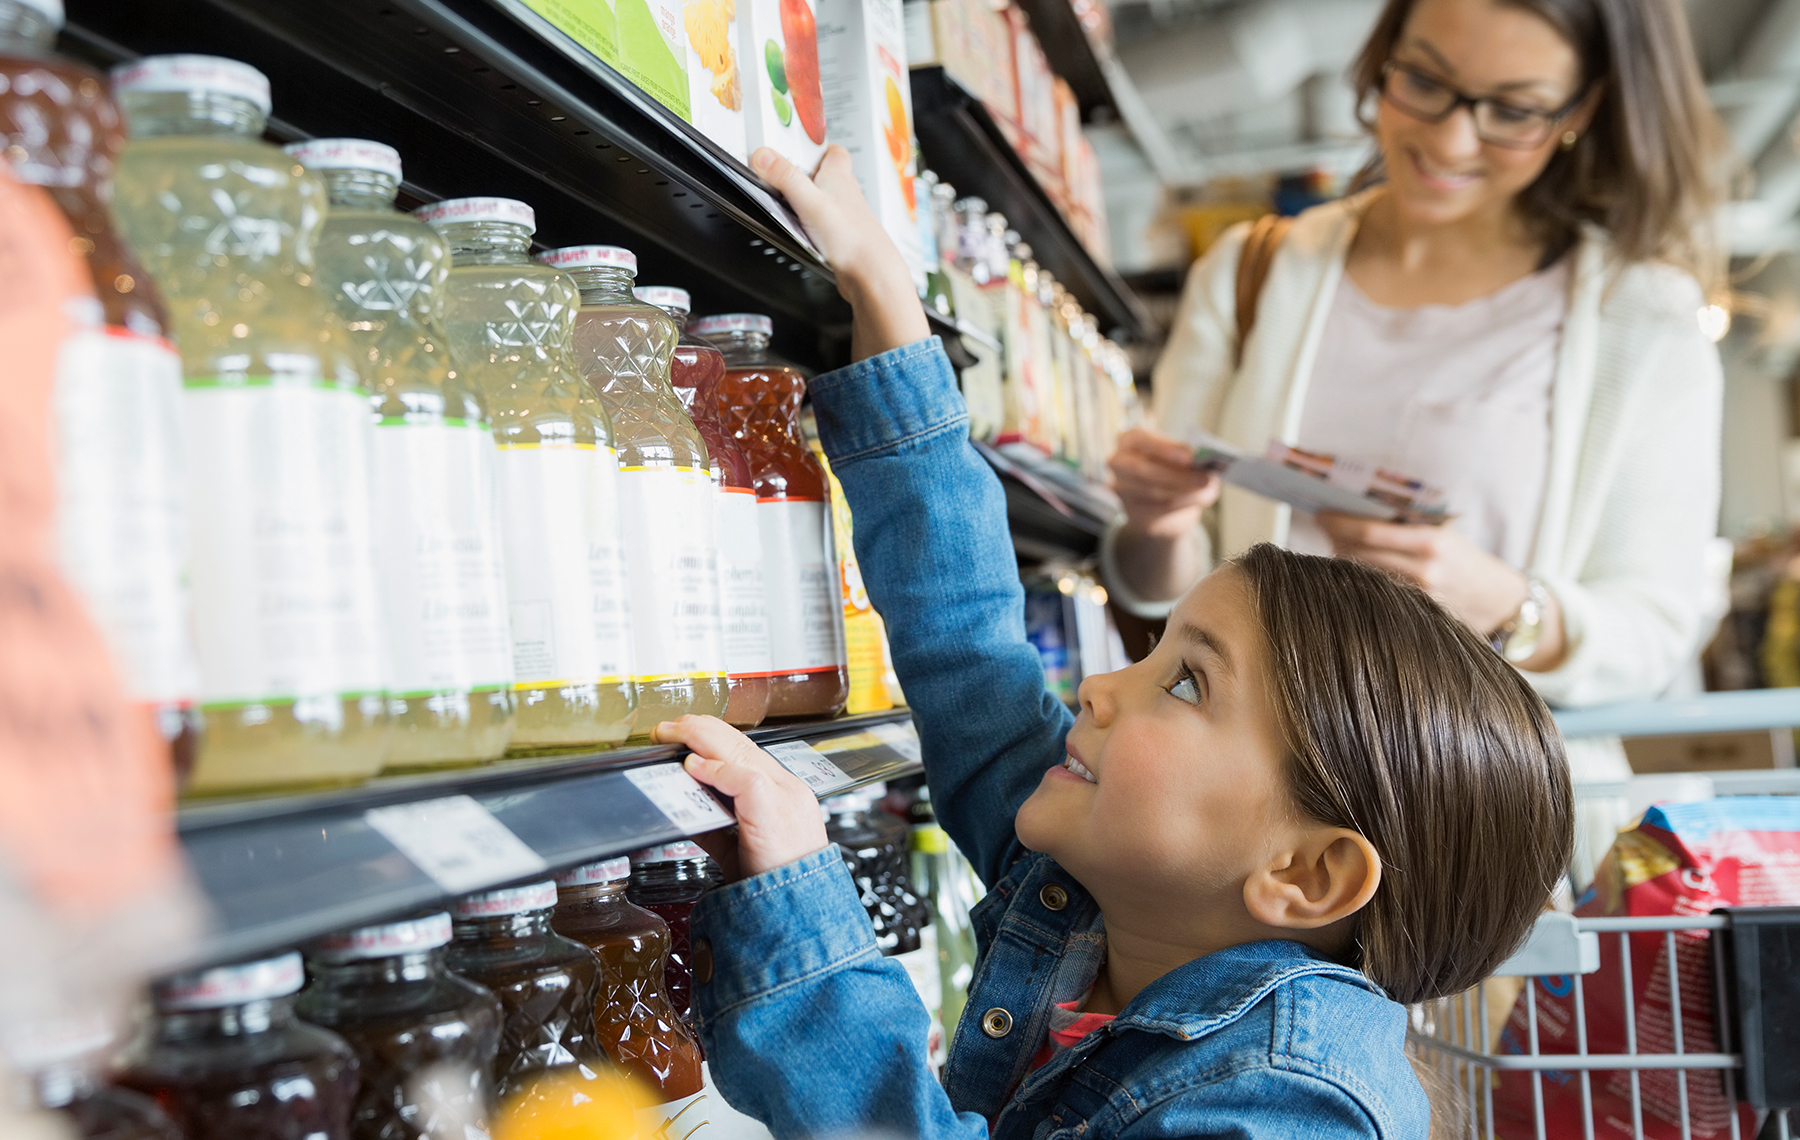 Child trying to reach a juice in the supermarket